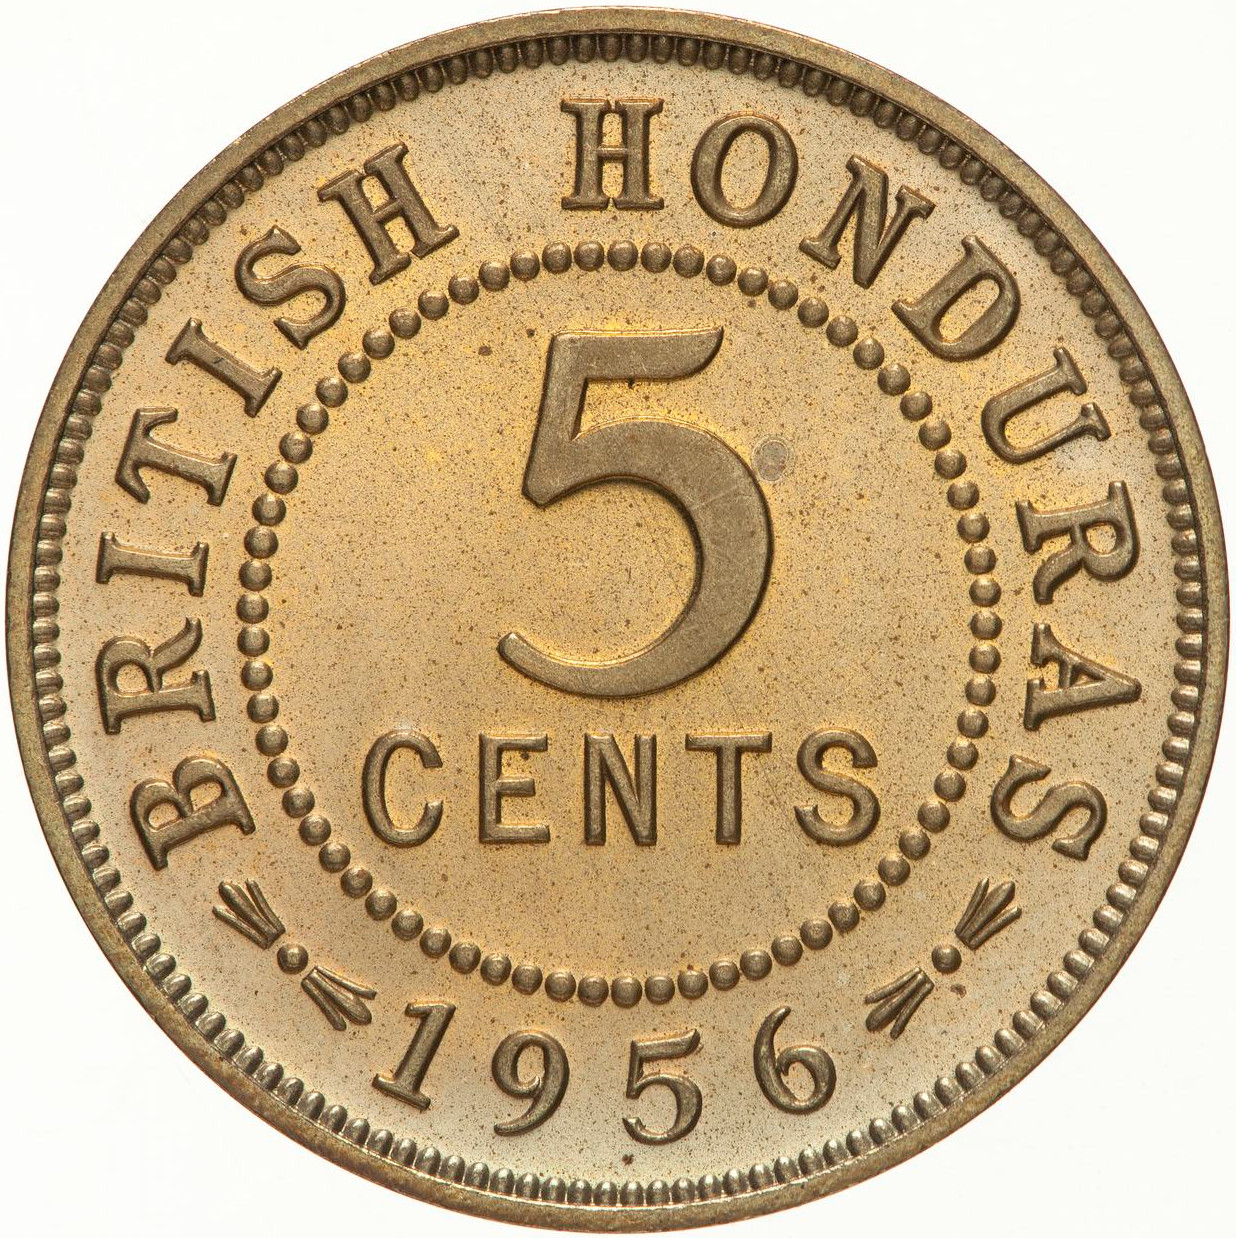 Five Cents 1956: Photo Proof Coin - 5 Cents, British Honduras (Belize), 1956